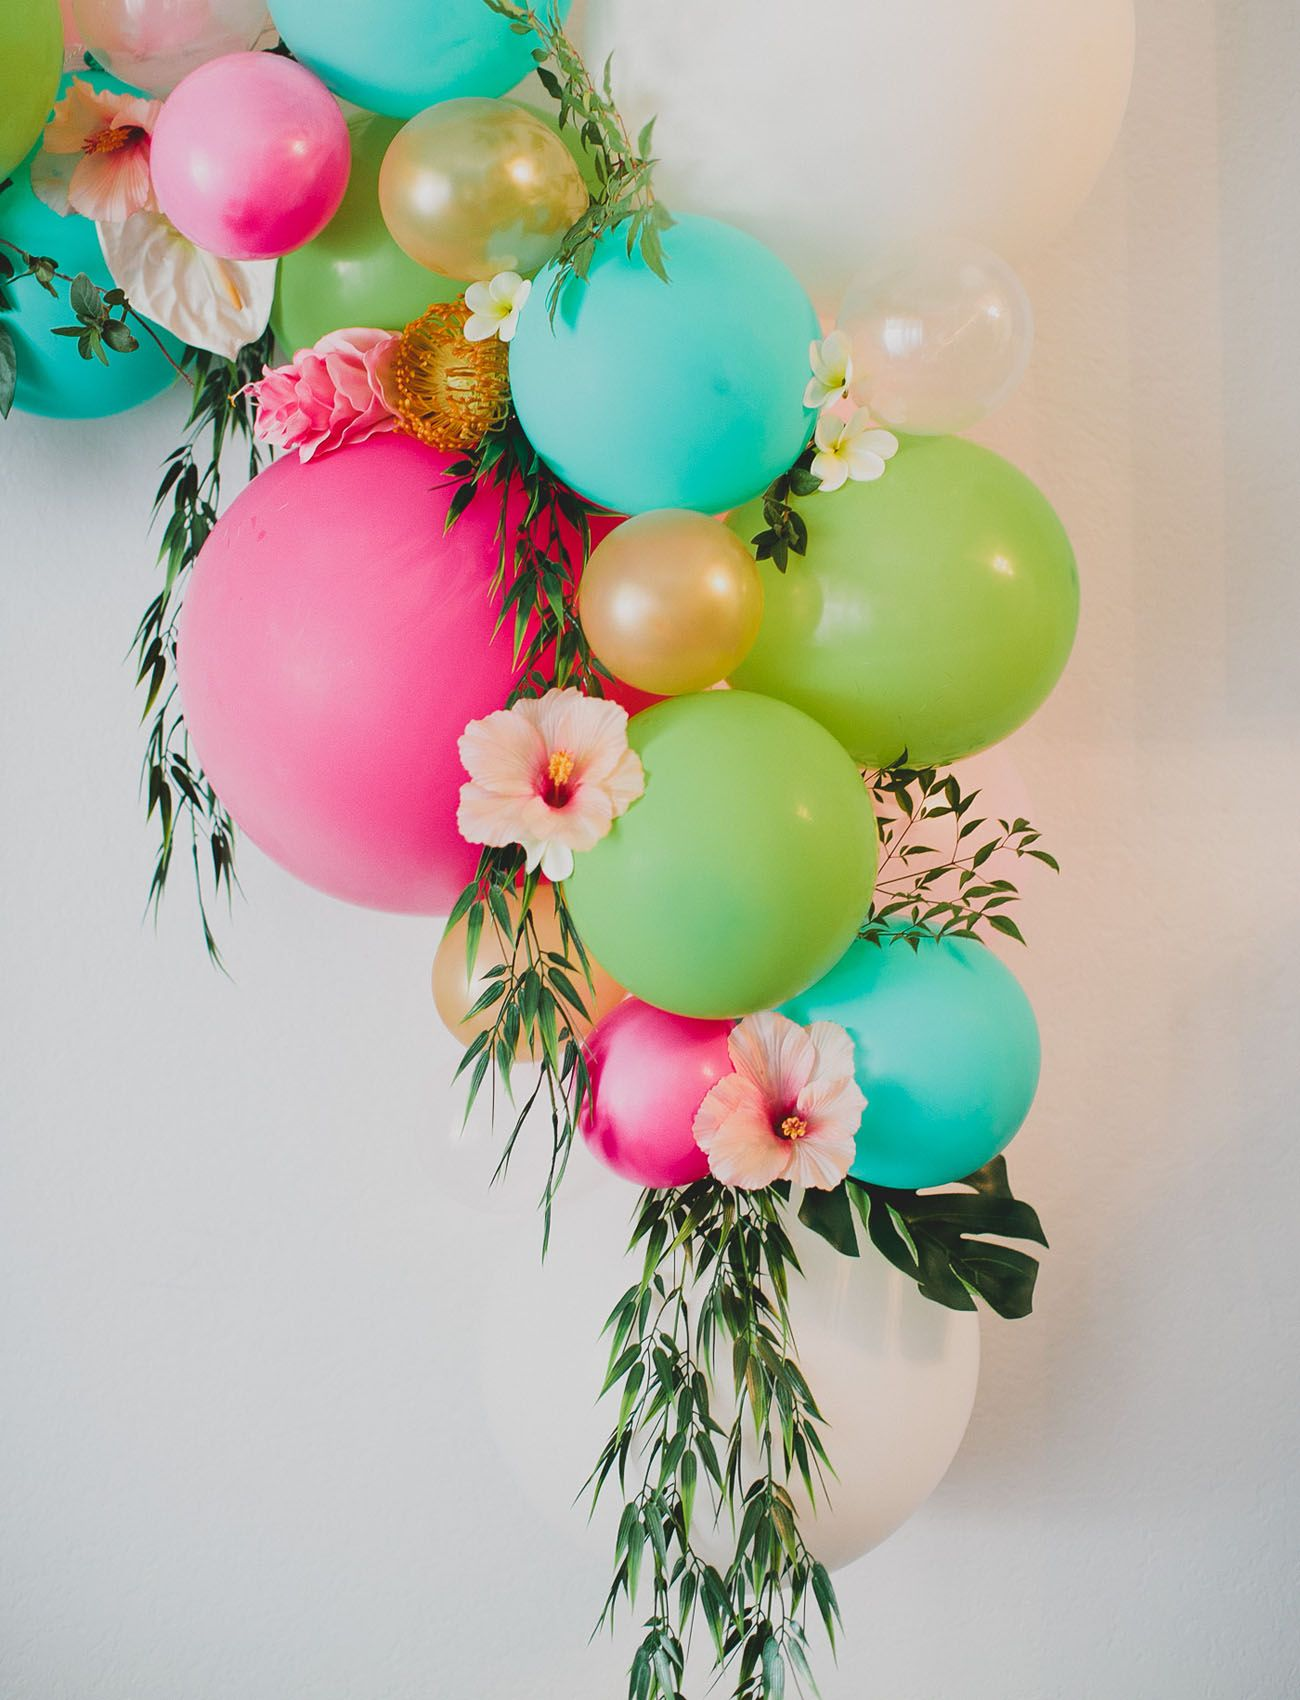 Pin von Stella Fary auf Tropical birthday | Pinterest